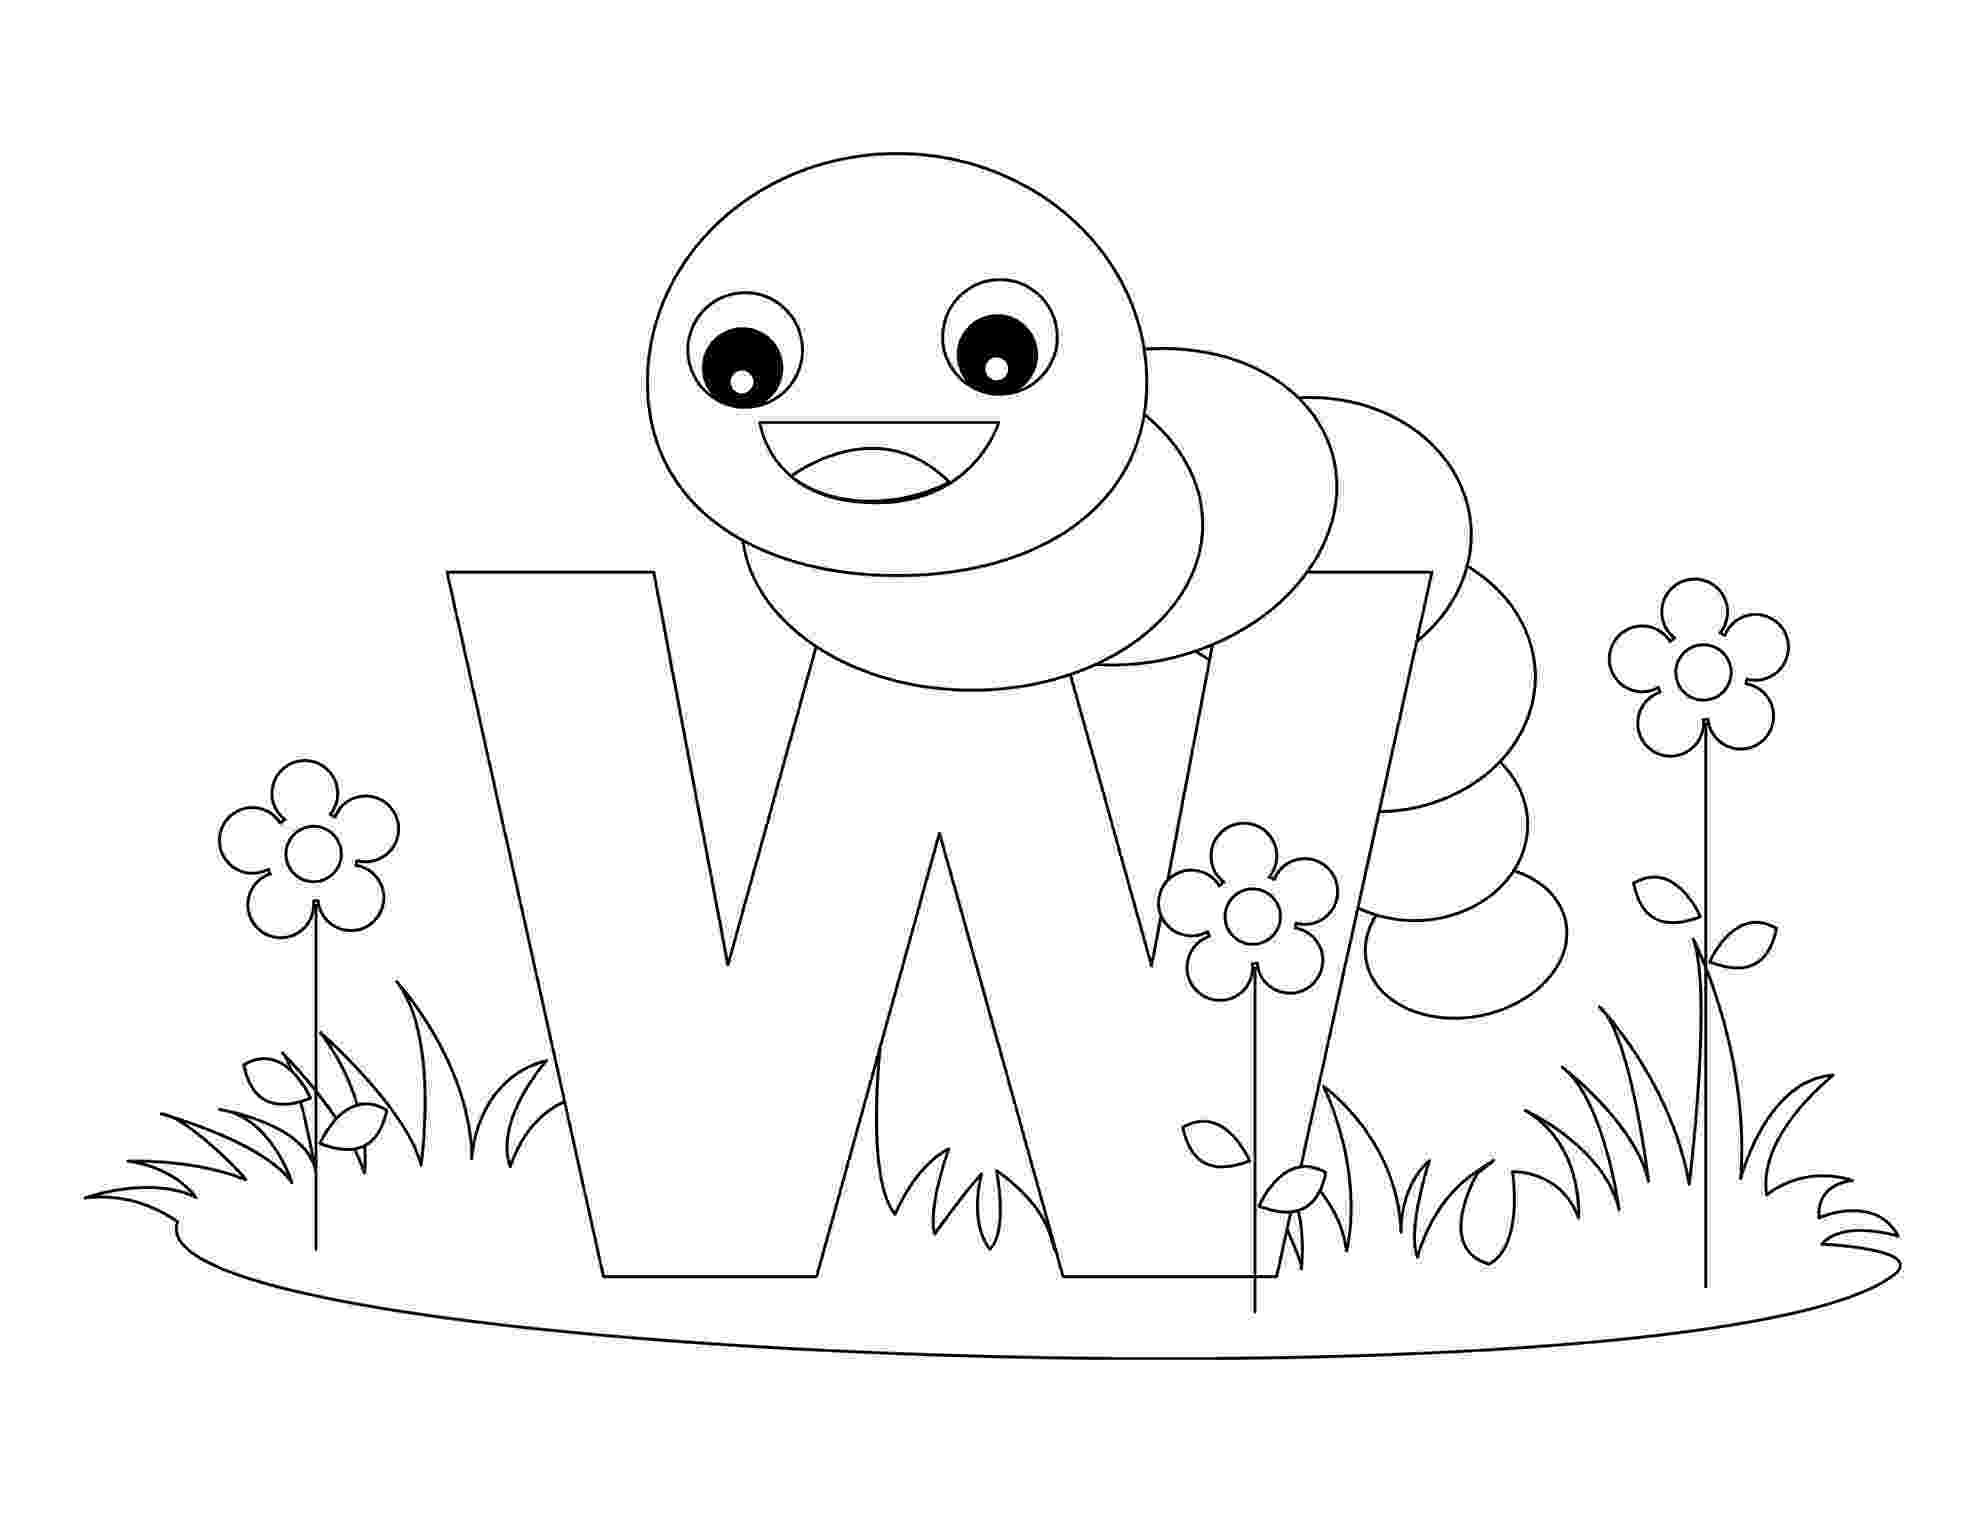 printable coloring alphabet letters free printable alphabet coloring pages for kids best printable alphabet coloring letters